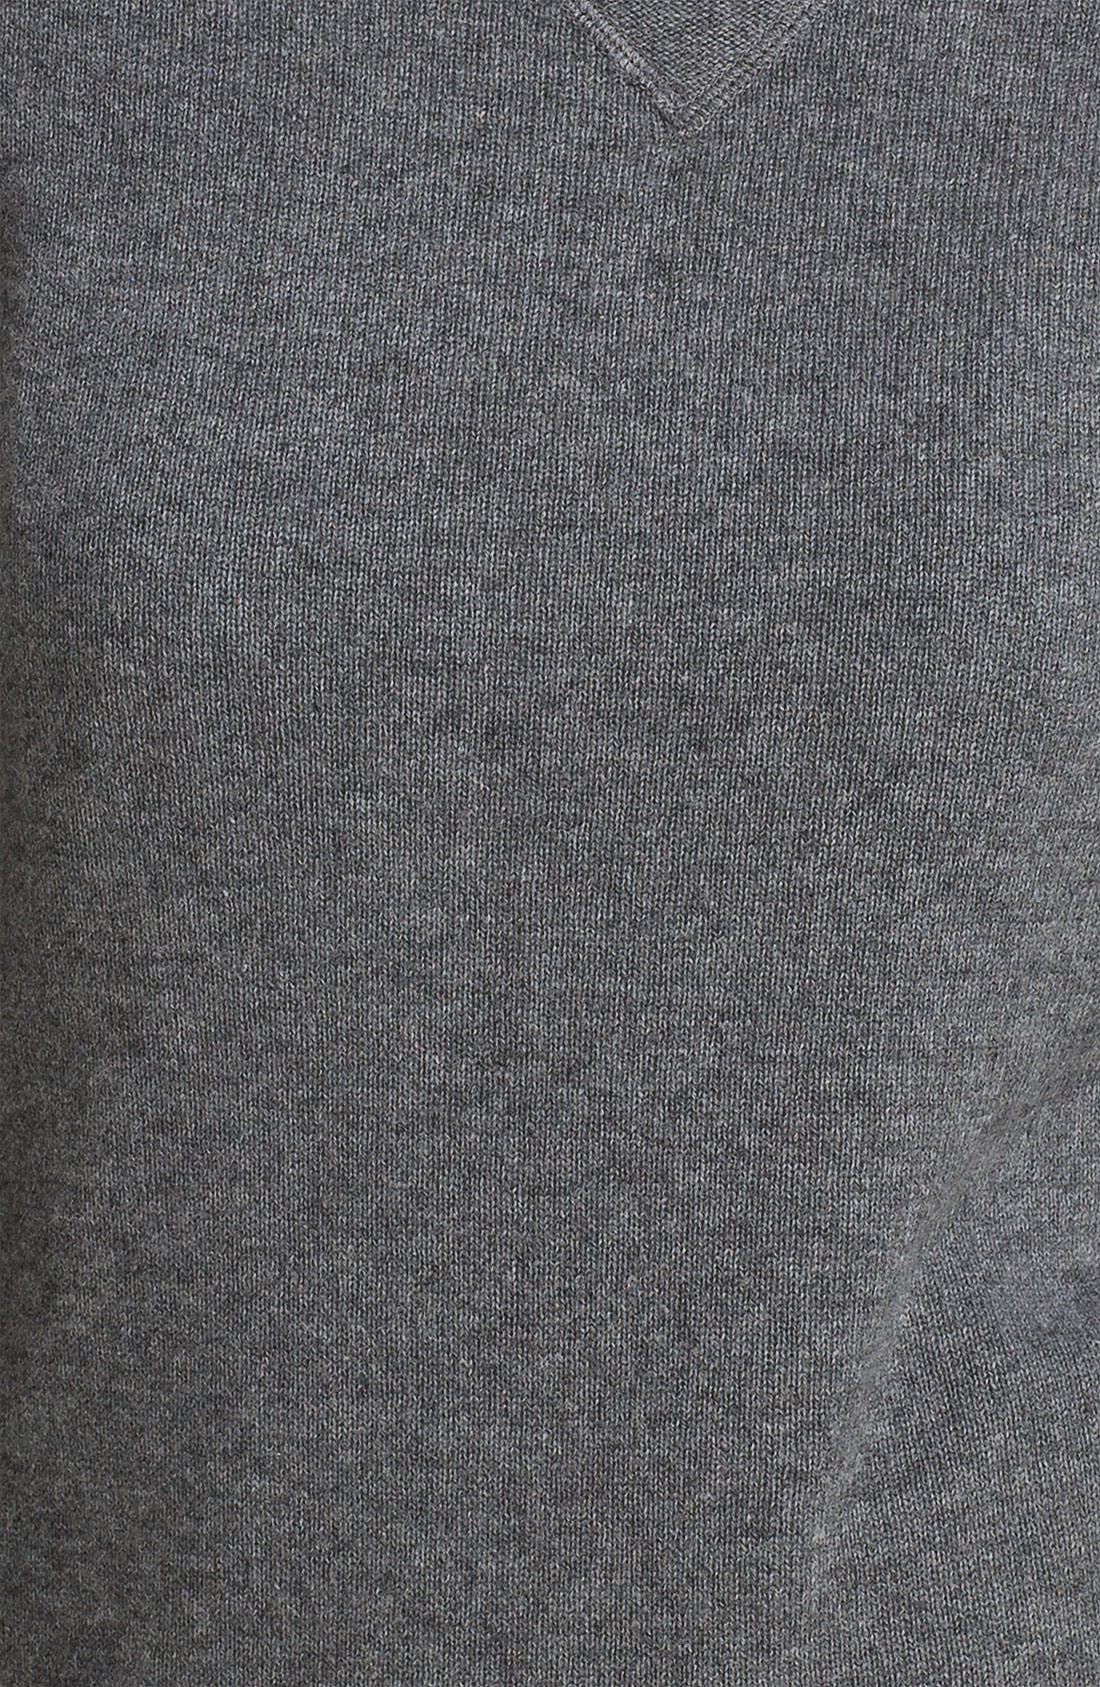 Cashmere Sweater,                             Alternate thumbnail 3, color,                             020